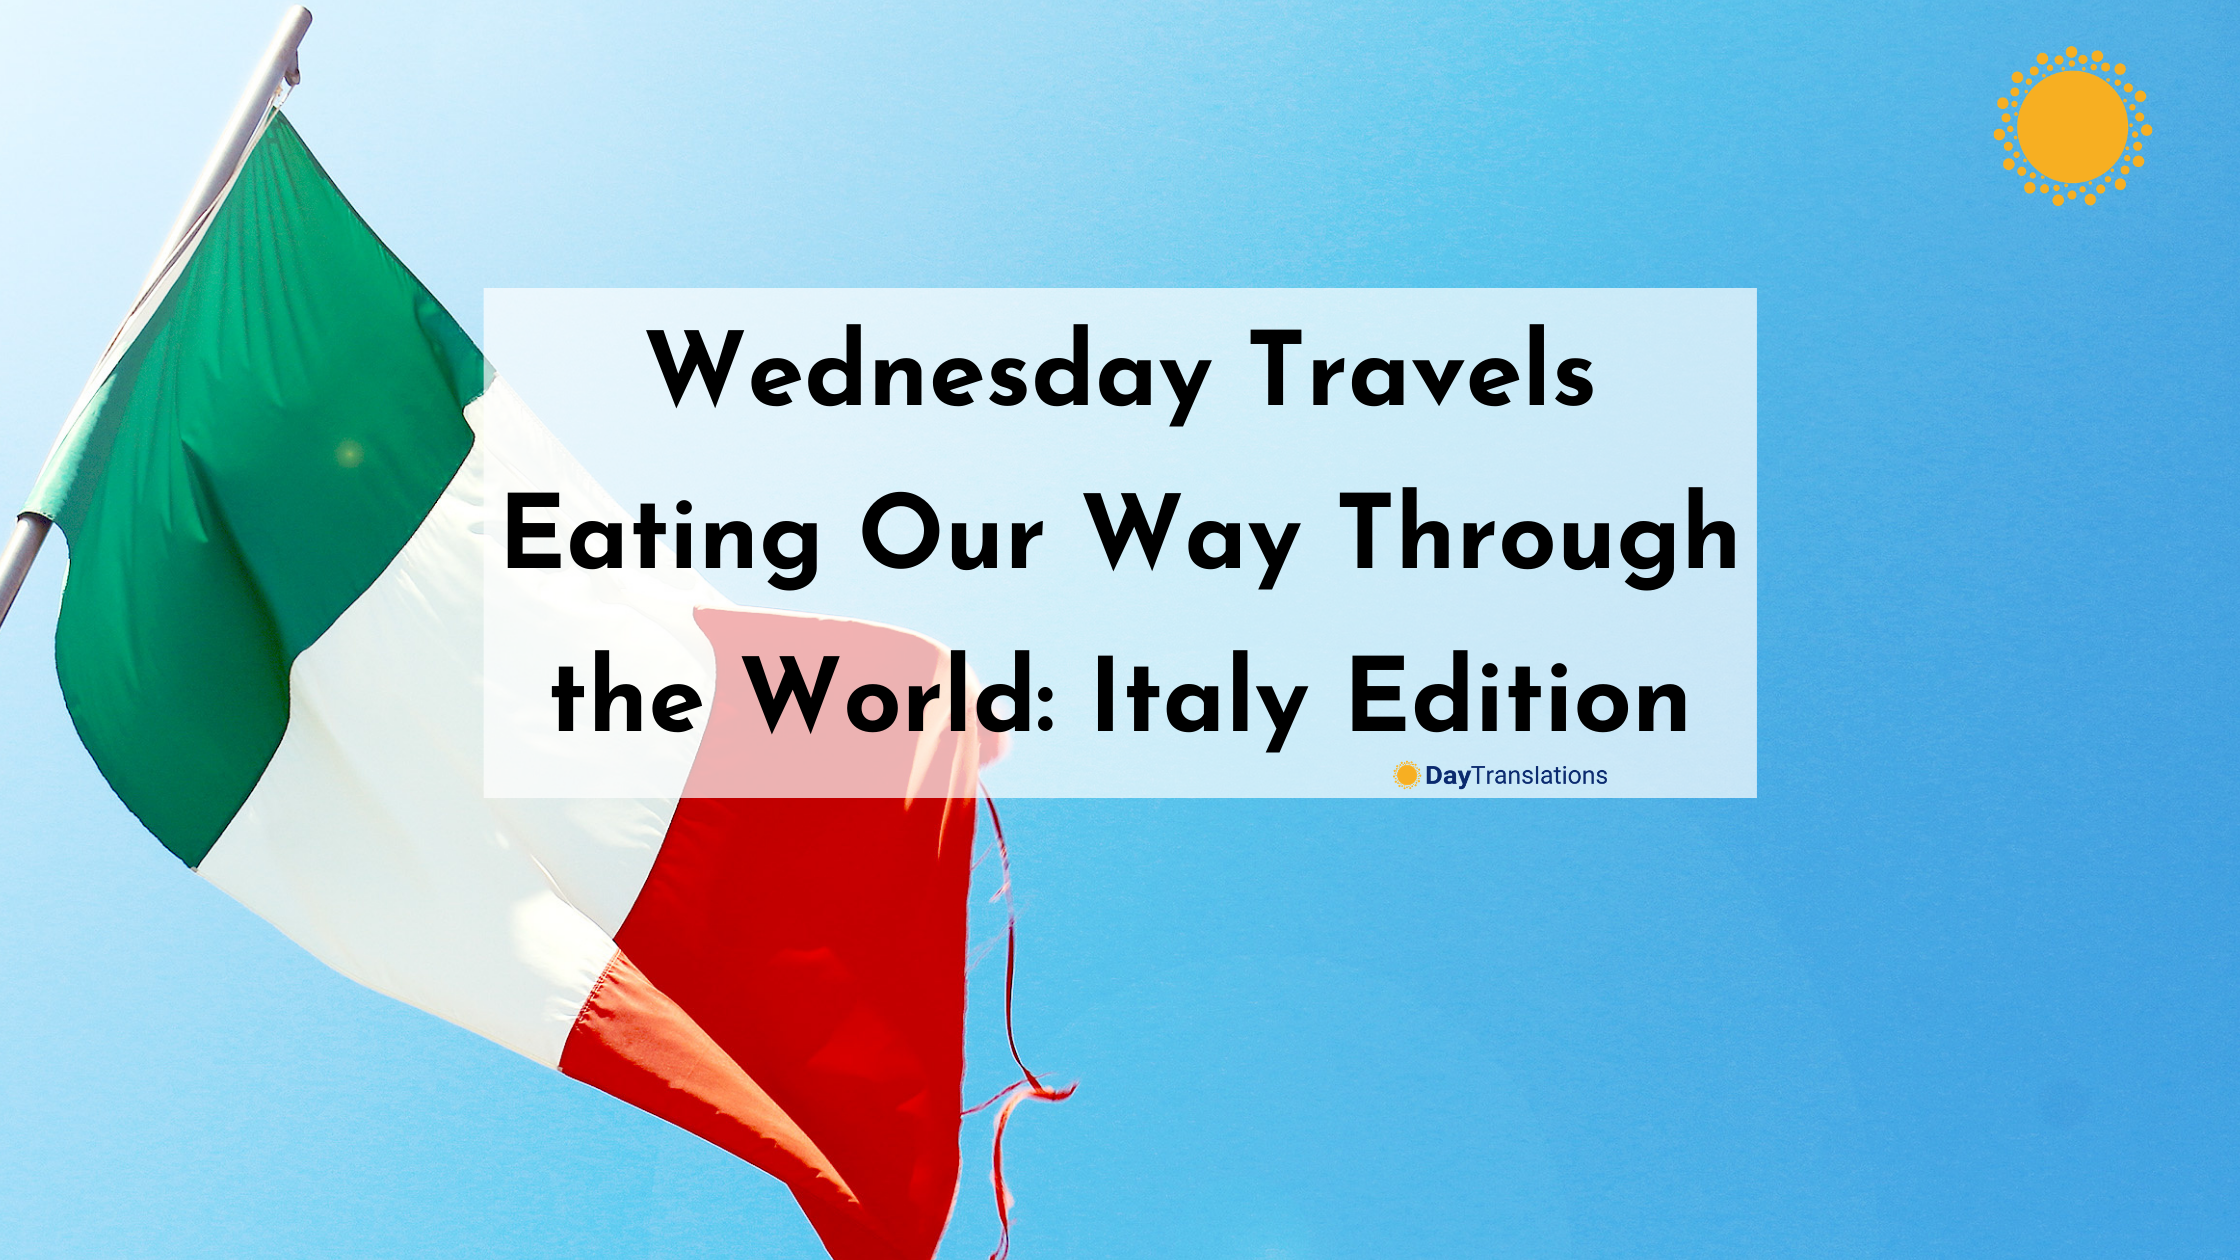 Wednesday Travels: Eating Our Way Through the World – Italy Edition